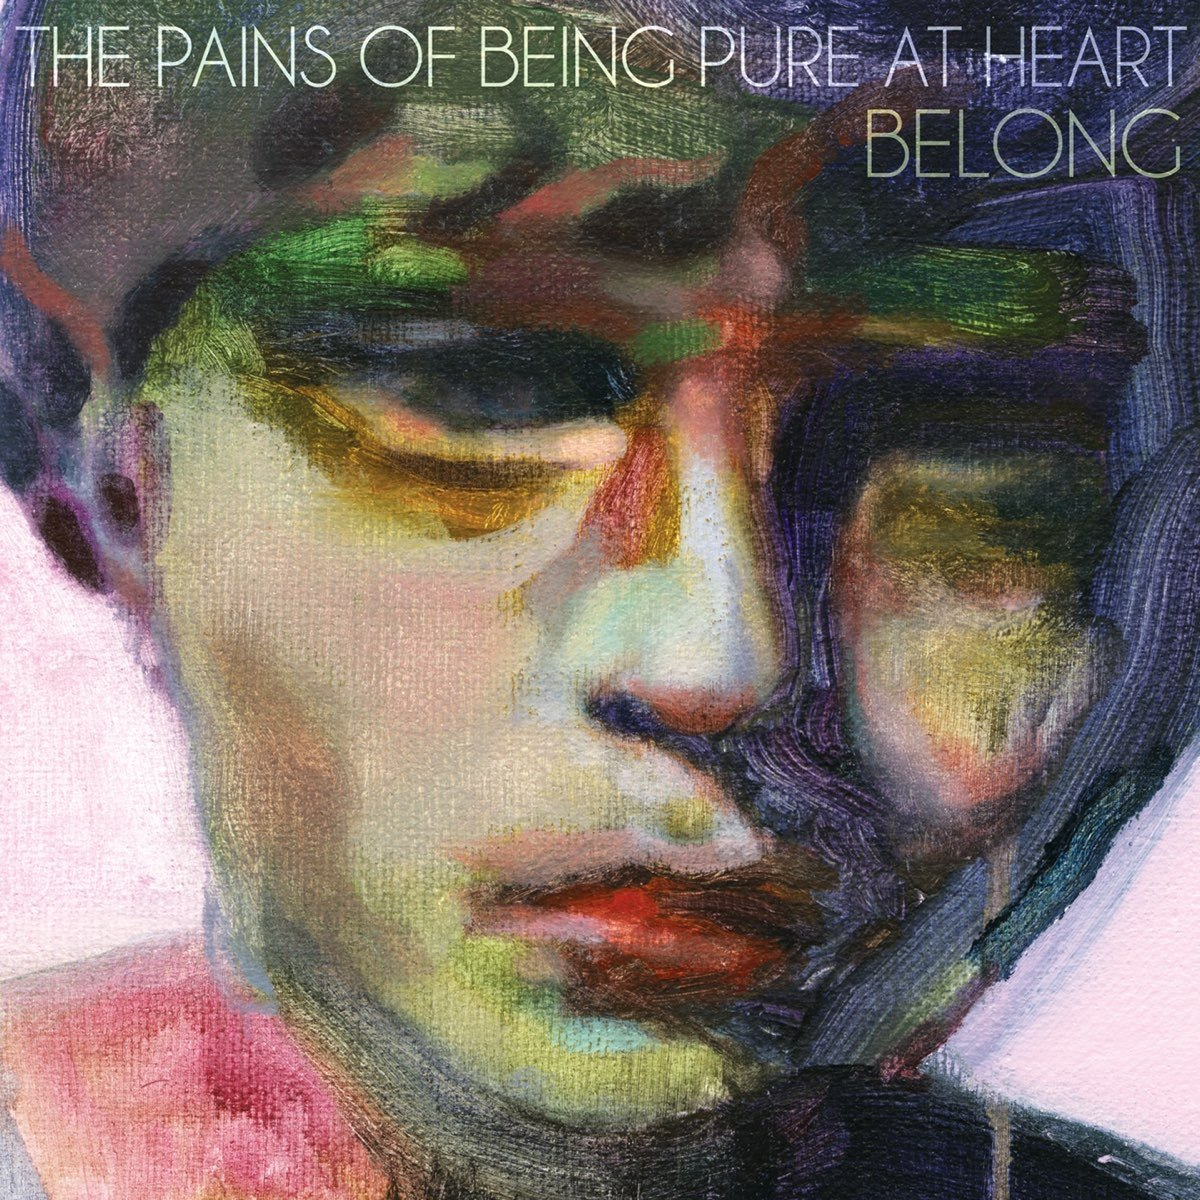 The Pains of Being Pure at Heart, Belong